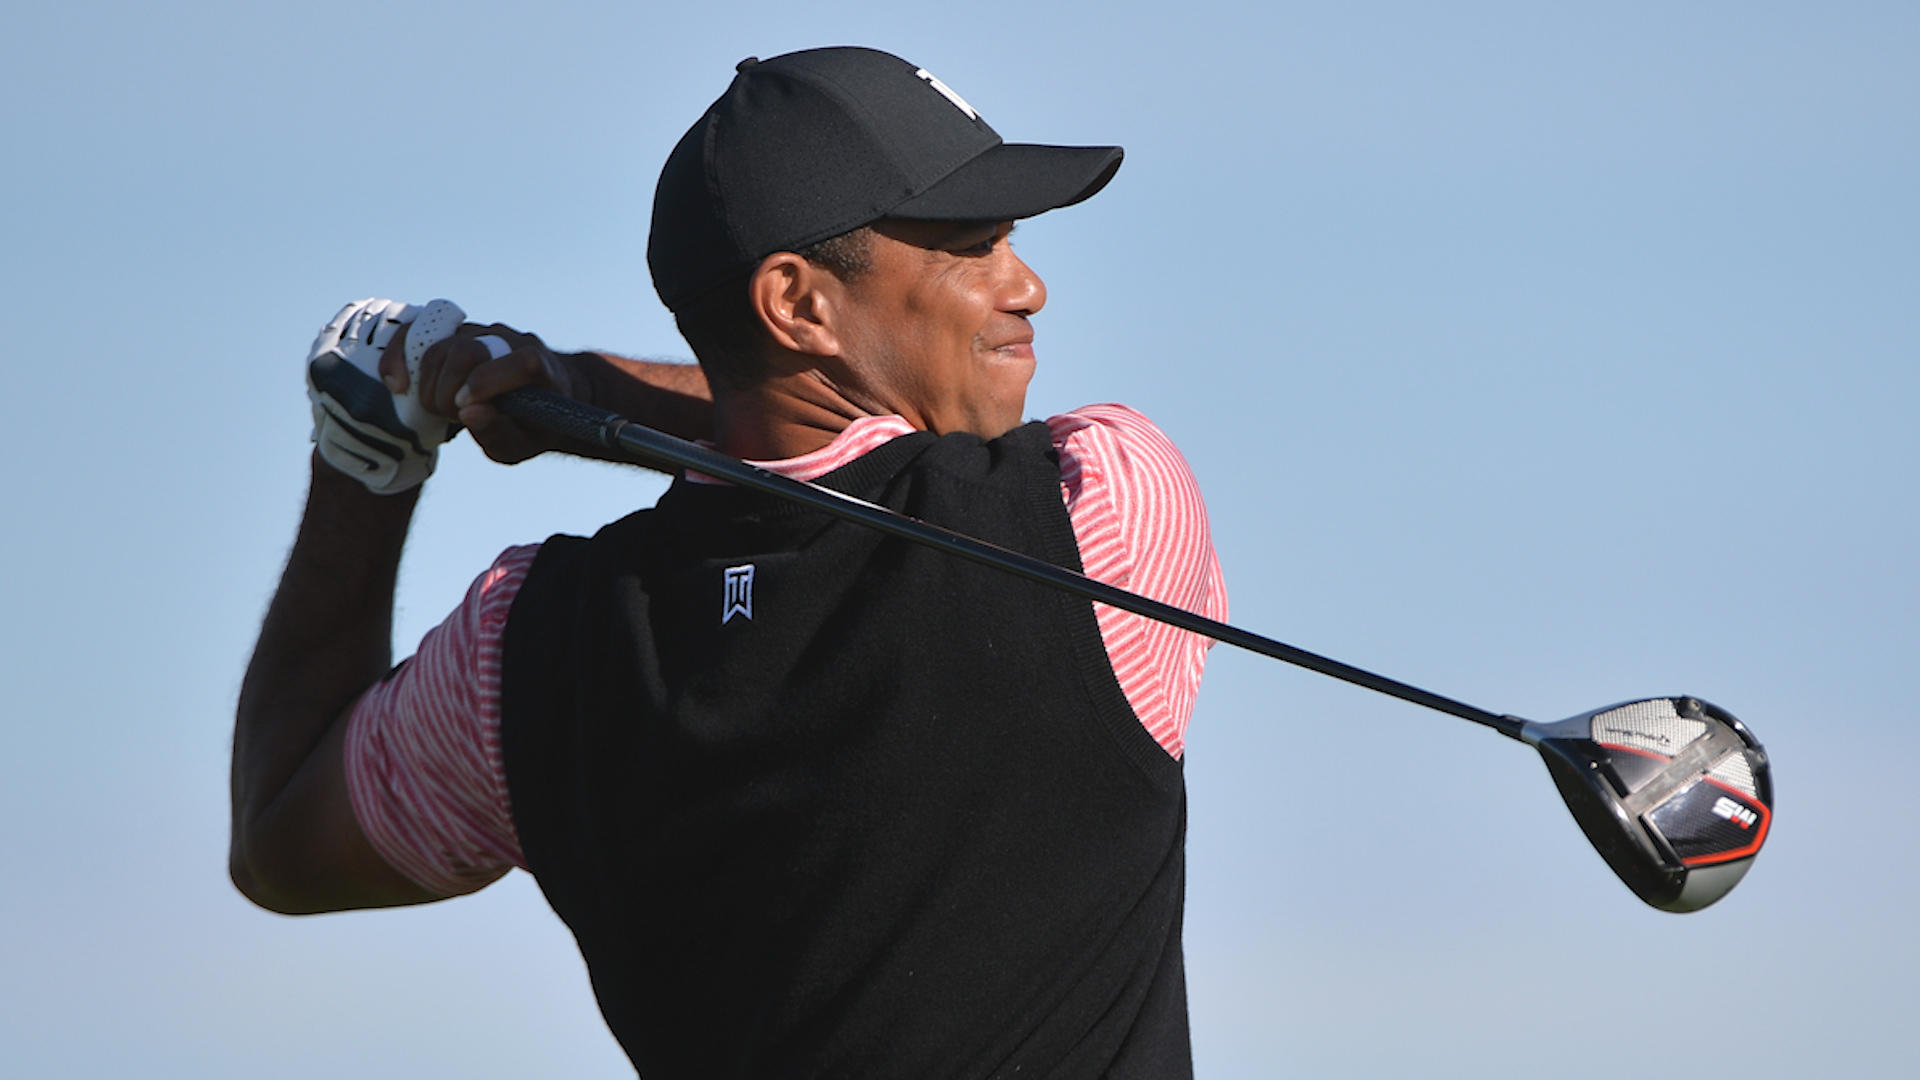 2019 WGC-Mexico Championship tee times, pairings: When Tiger Woods, the field start in Round 2 on Friday